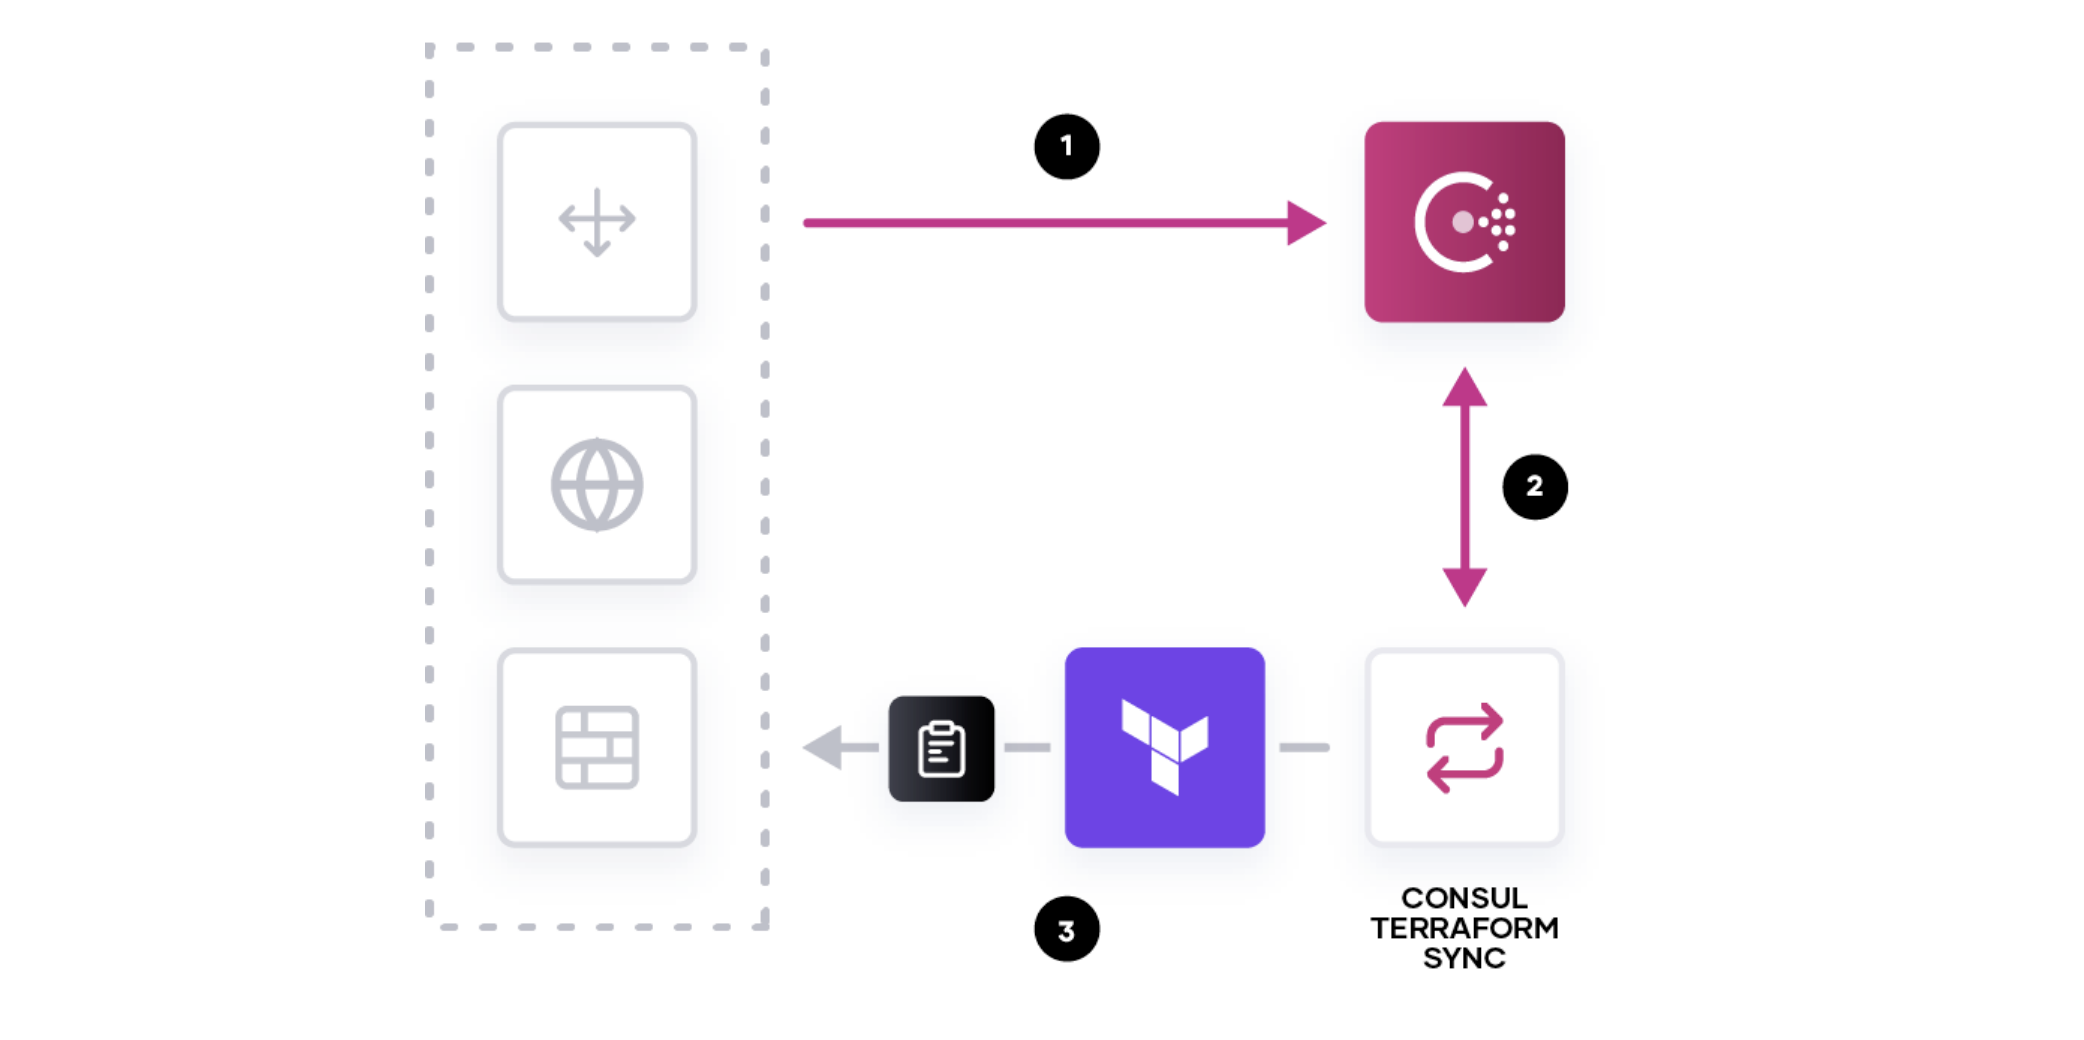 Illustration of the interaction between the Consul, Consul Terraform Sync, and the underlying network infrastructure devices